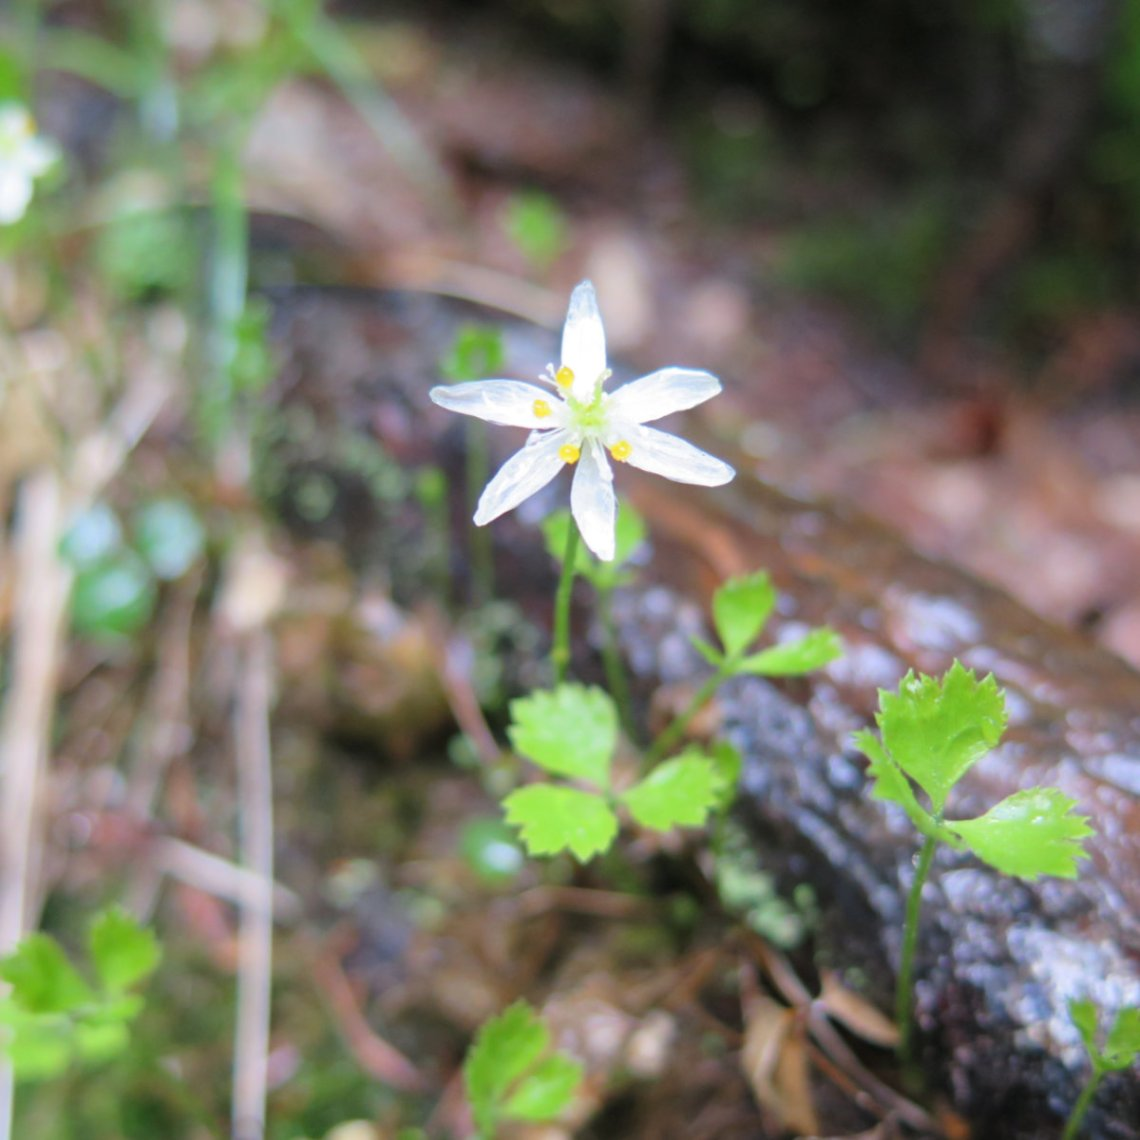 Goldthread flower blossom found in the White Mountain National Forest, New Hampshire.